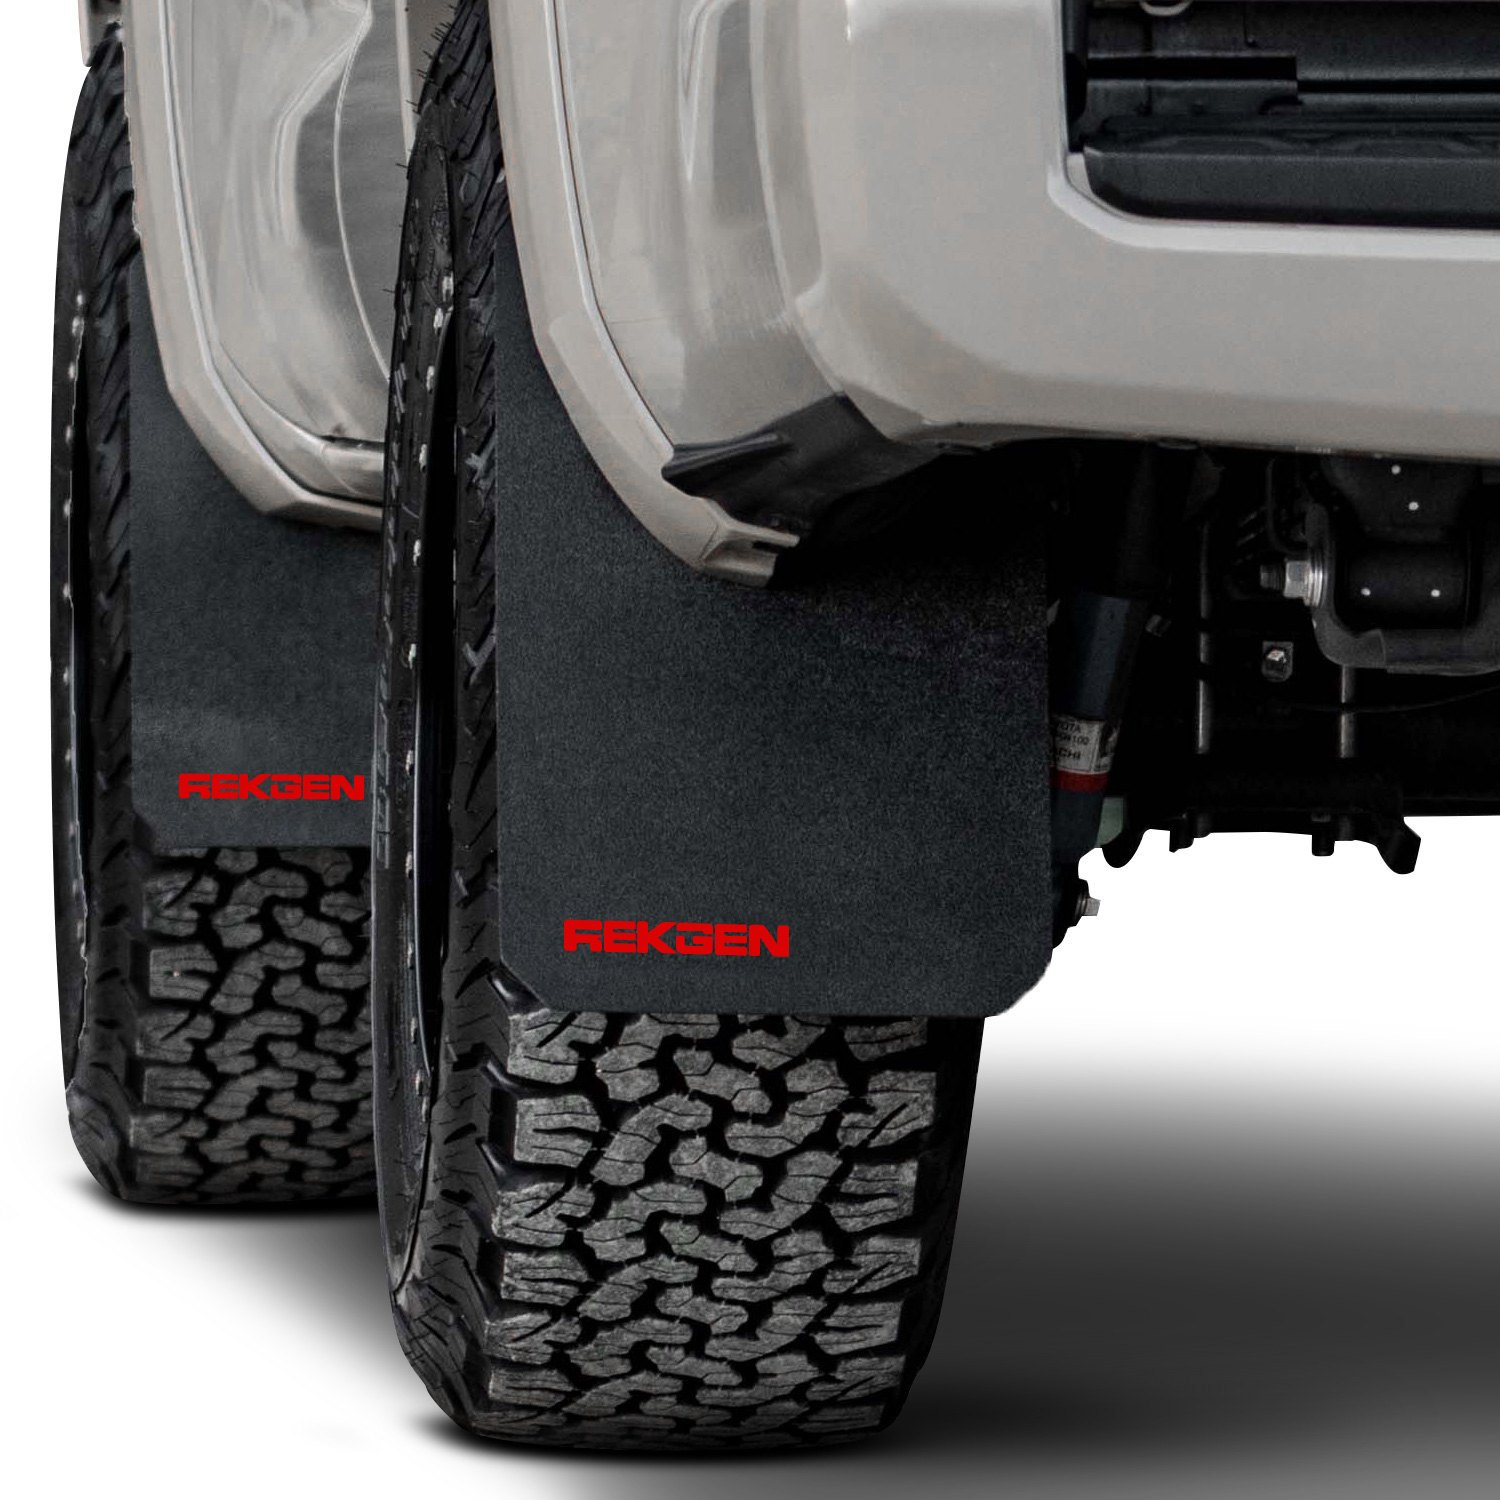 Semi Mud Flaps >> For Toyota Tacoma 2016-2019 Rek Gen T1004 Rally Edition ...